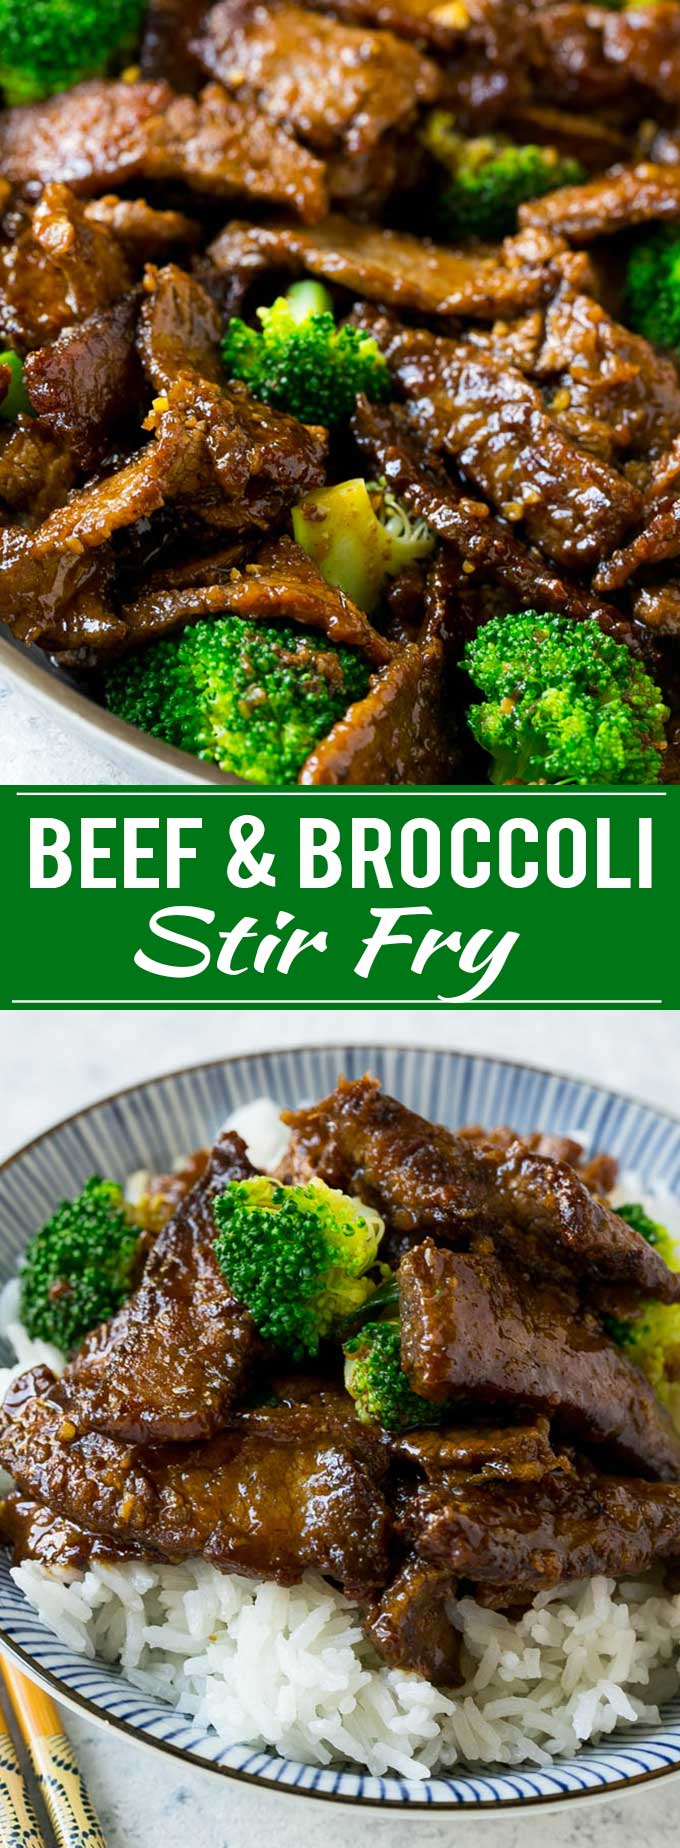 Beef and broccoli stir fry dinner at the zoo beef and broccoli stir fry recipe beef and broccoli asian beef beef stir forumfinder Image collections